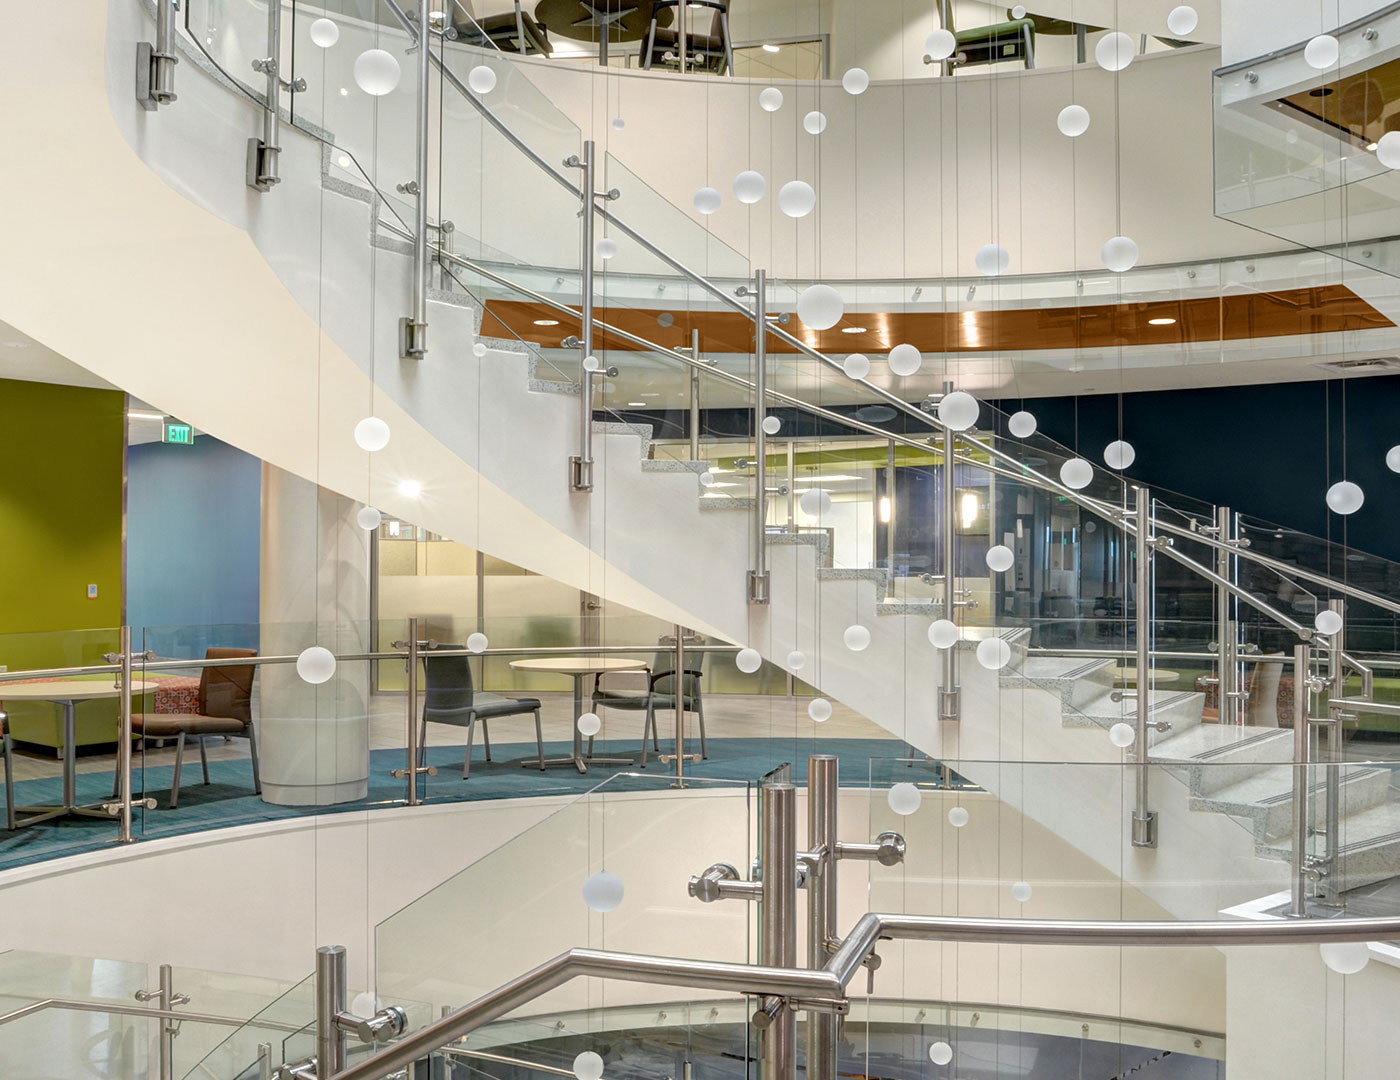 Trex commercial products vista railing at csu health and